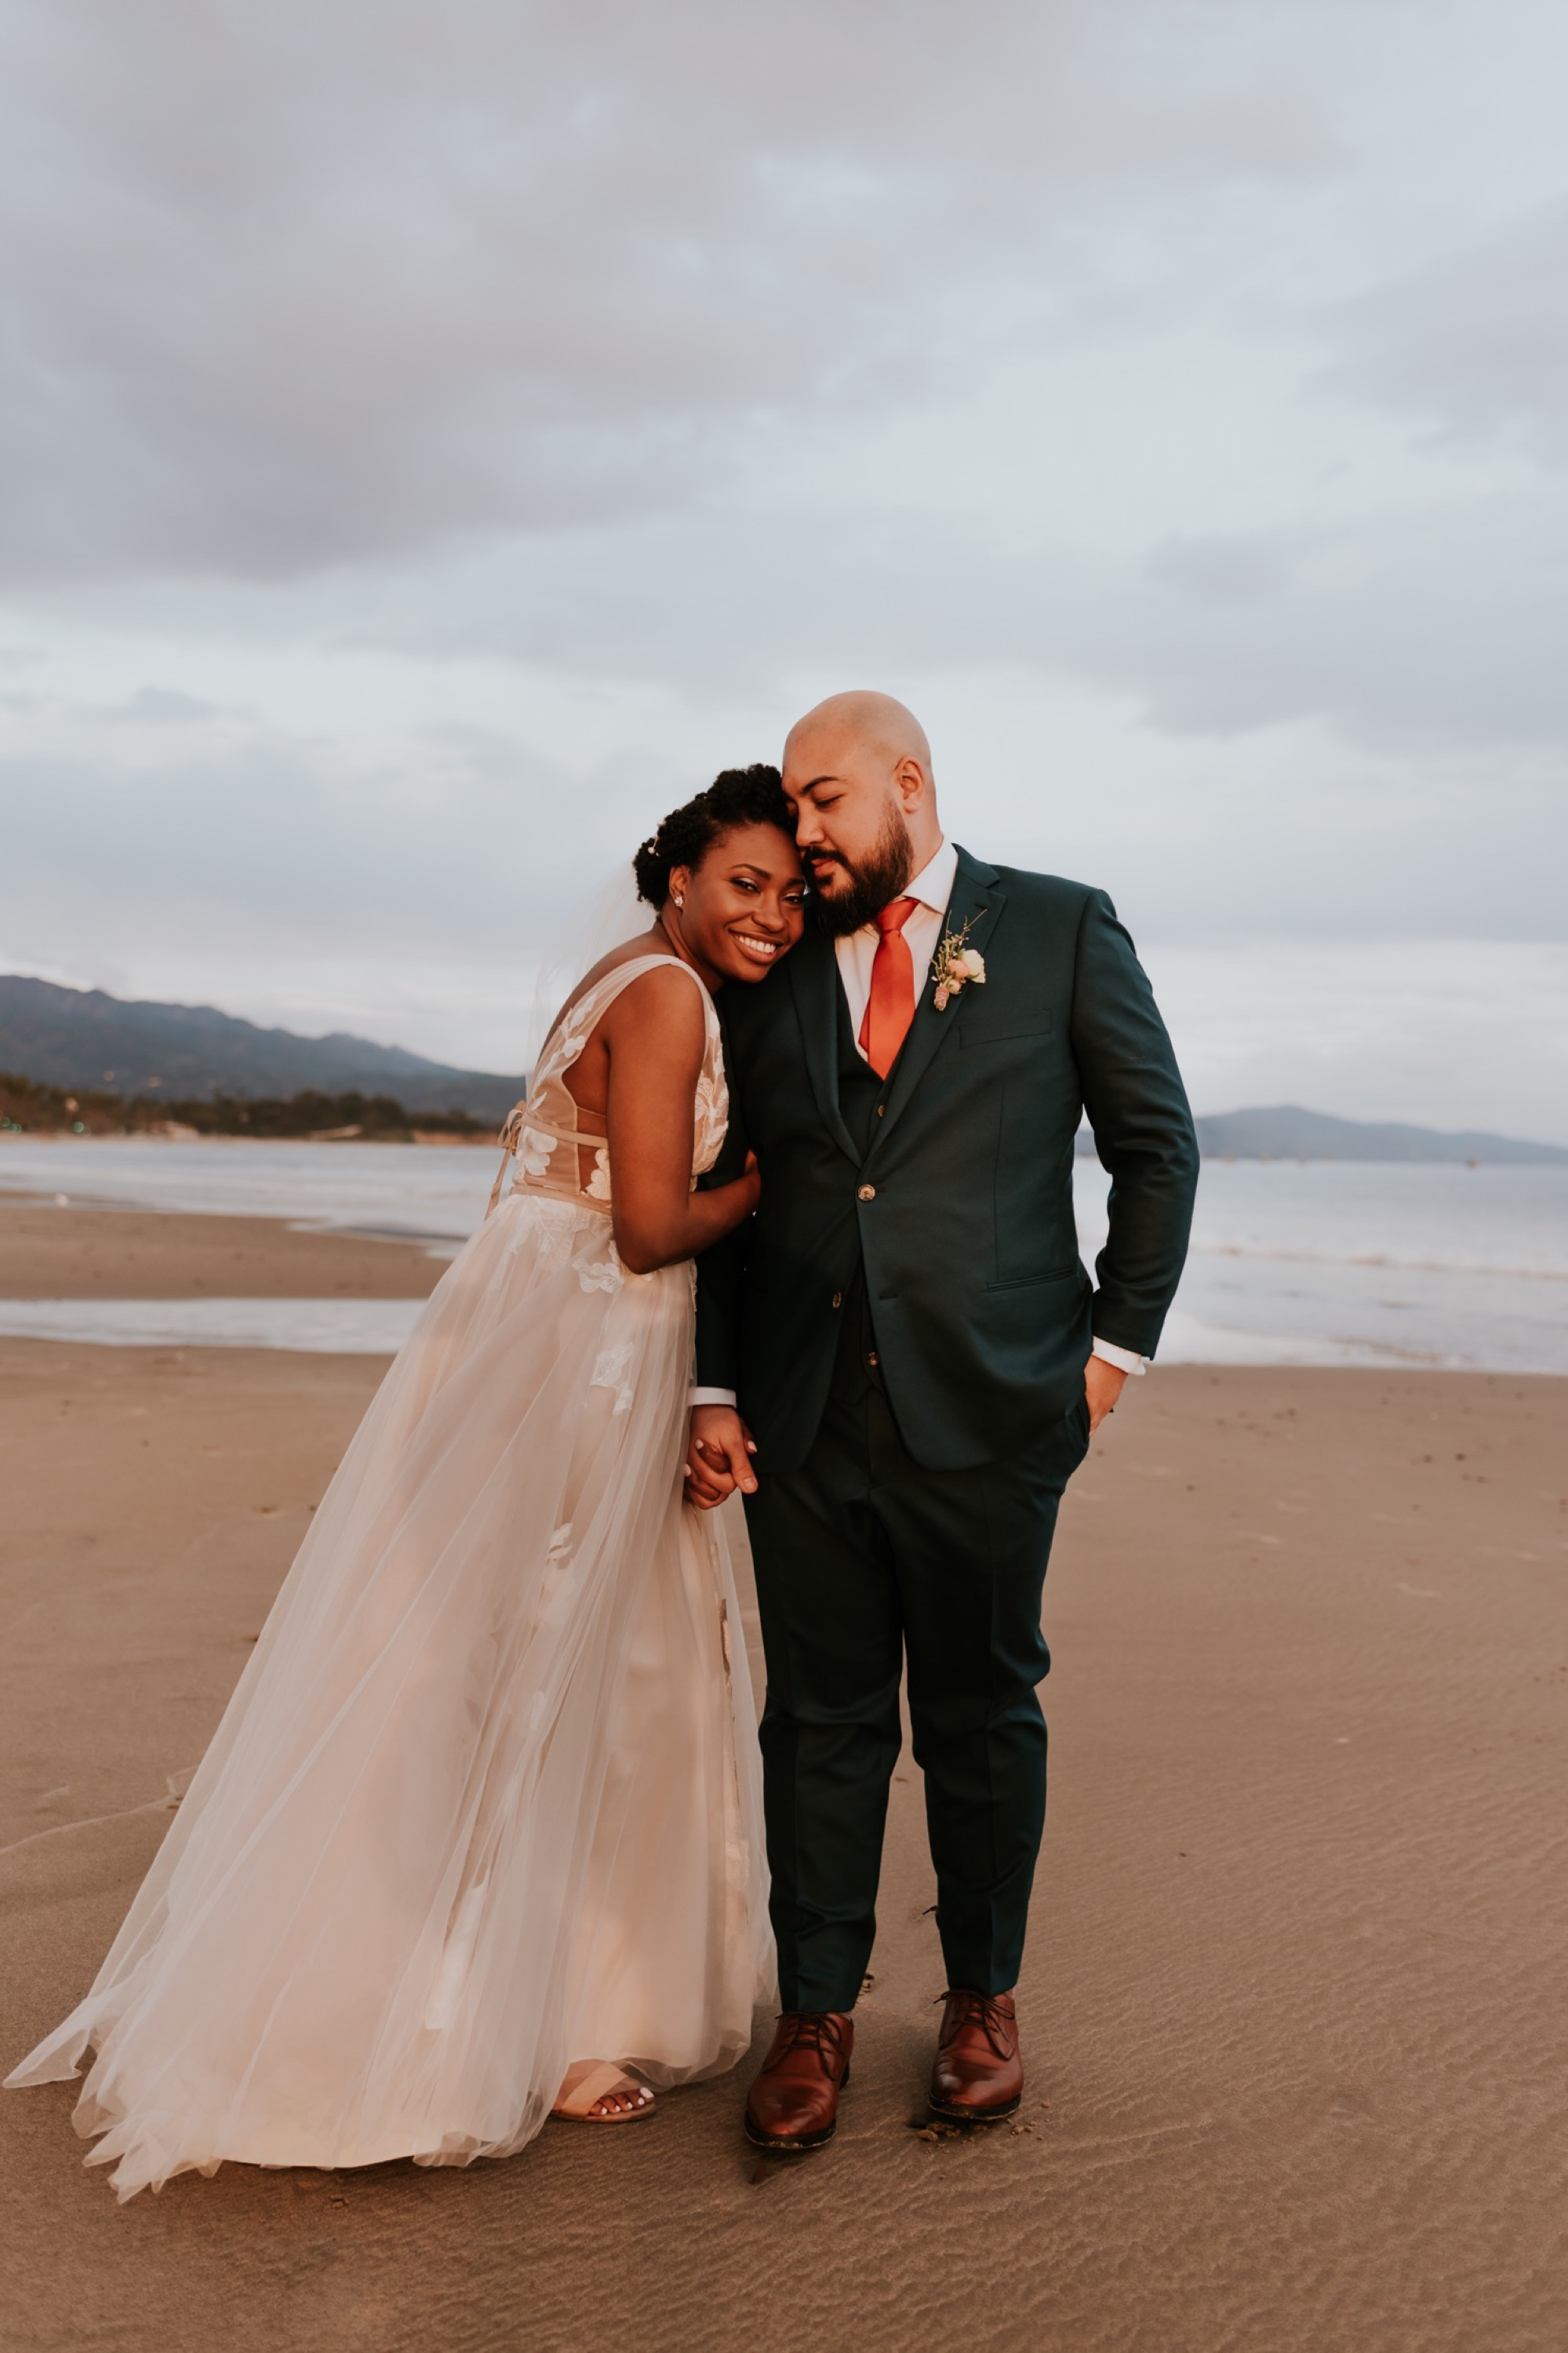 Santa Barbara Wedding at the Carousel House | Sunset Beach Wedding Portraits | Carrie Rogers Photography